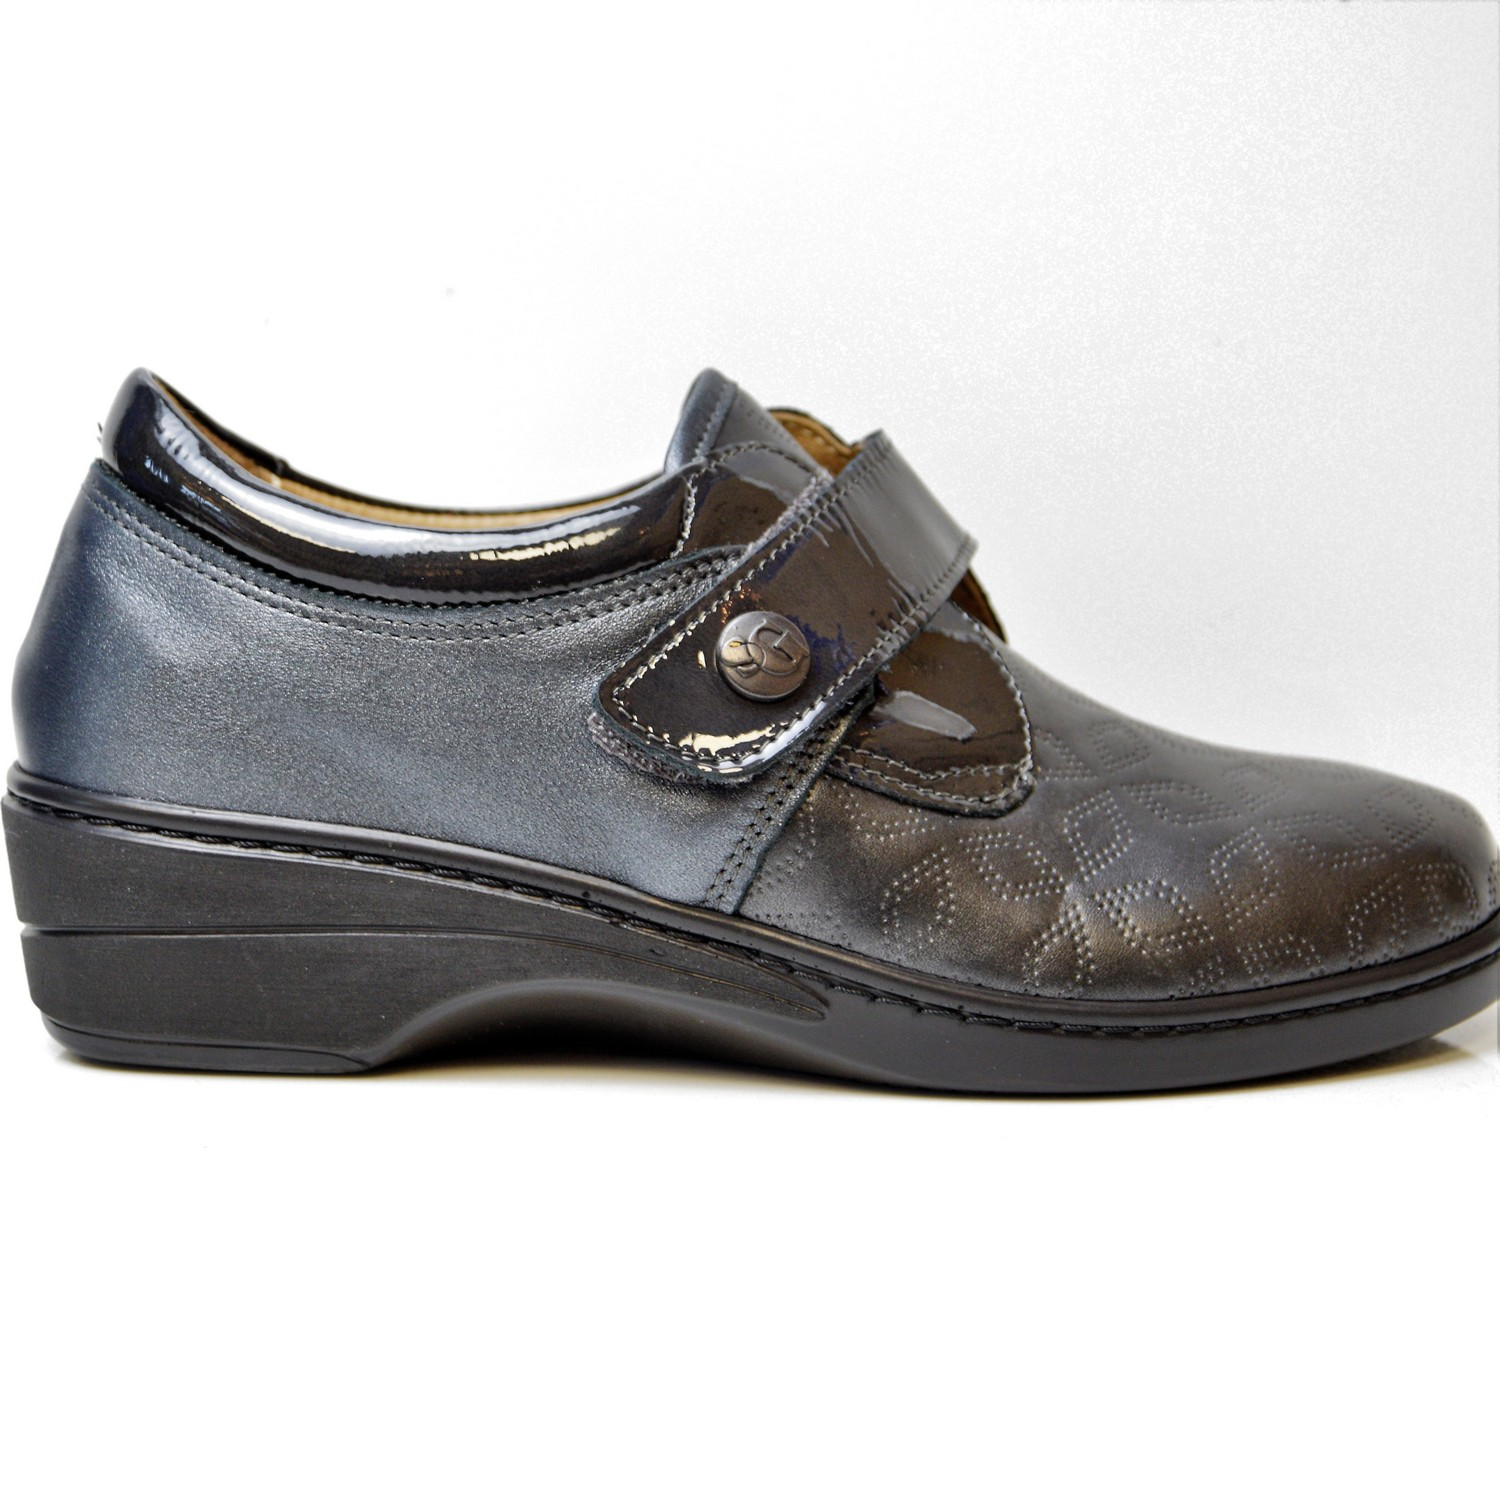 SANAGENS WOMEN'S SHOES REMOVABLE FOOTBED LEATHER BLACK